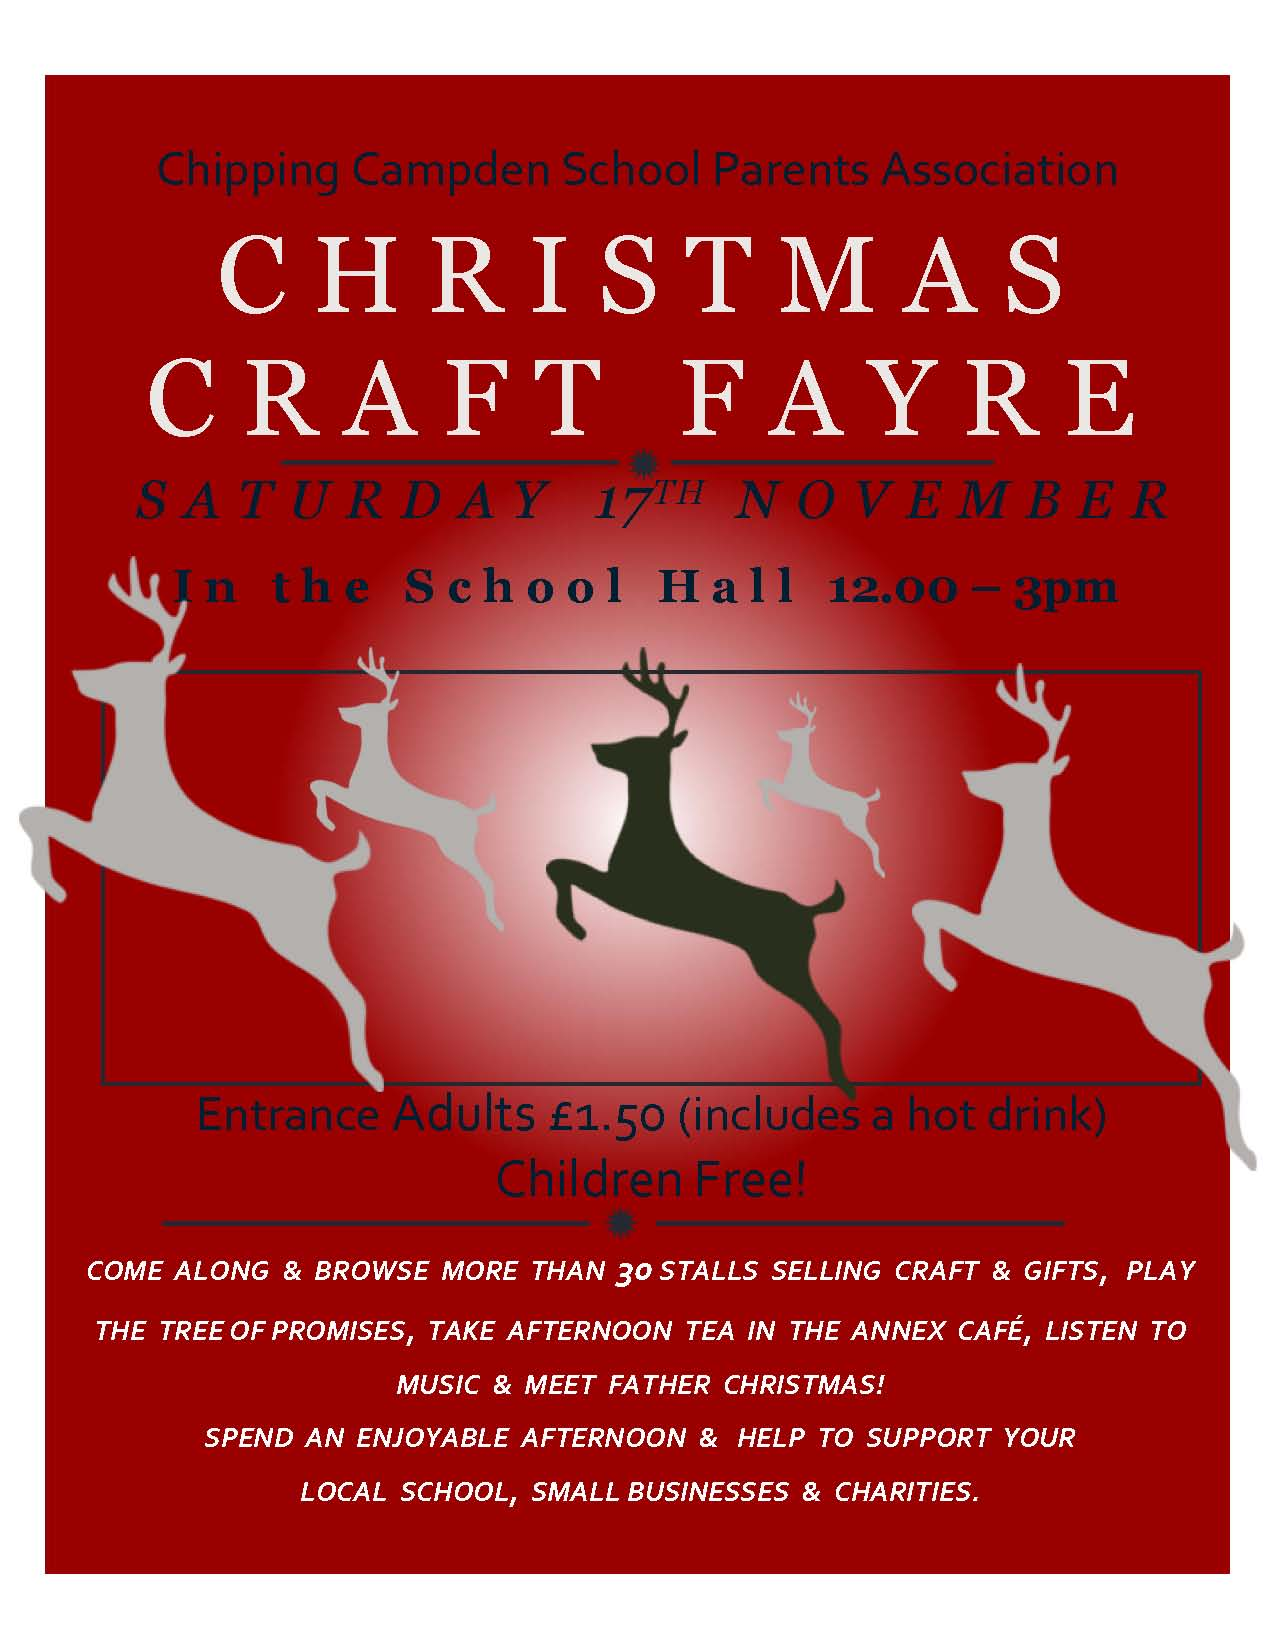 Christmas Craft Fare 2018